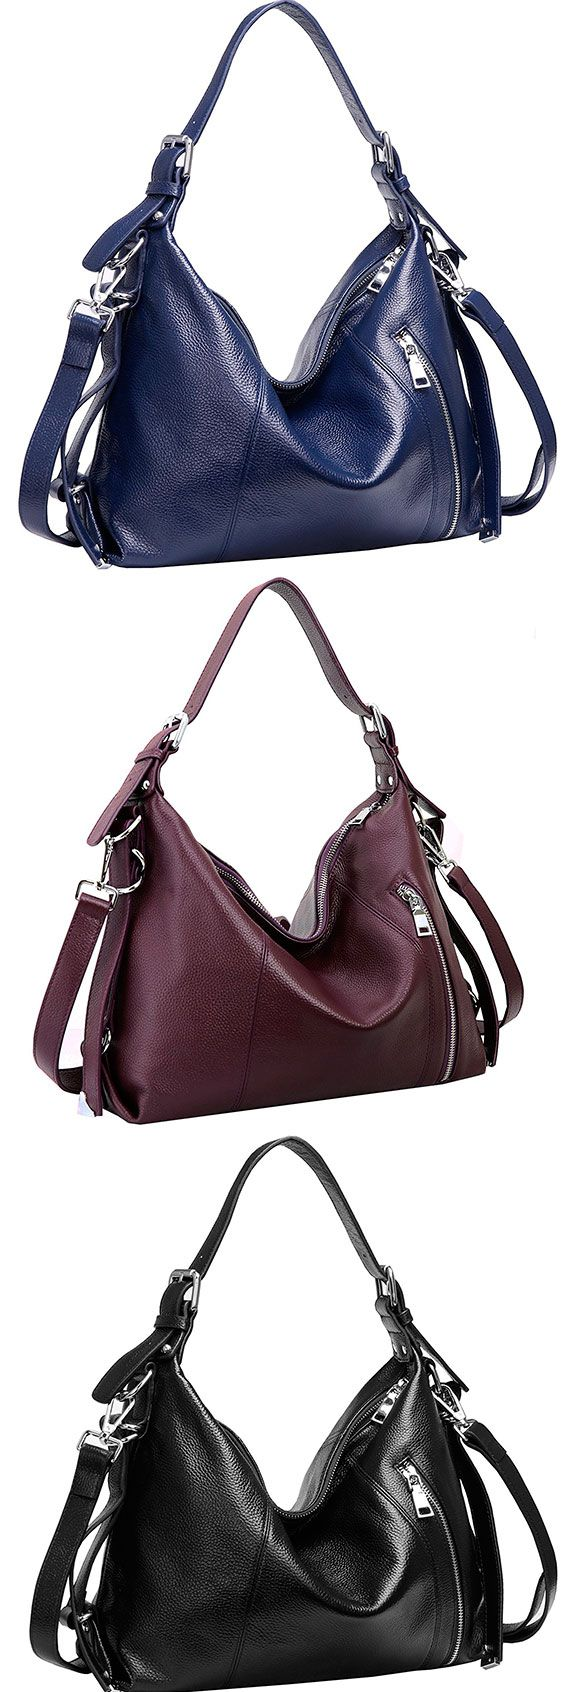 Heshe Leather Cross Body Hobo Bag – Best Satchel Leather Hobo Shoulder Bag The Heshe provides one of the larger and robust shoulder bags available. That total volume is divided up into numerous main compartments as well as various smaller ones. Offers an good sized shoulder and handle drop. #Heshe #Leather #Handbag #Hobo #ShoulderBag #Bag #Crossbody #Satchel #Blue #Navy #Purple #Black